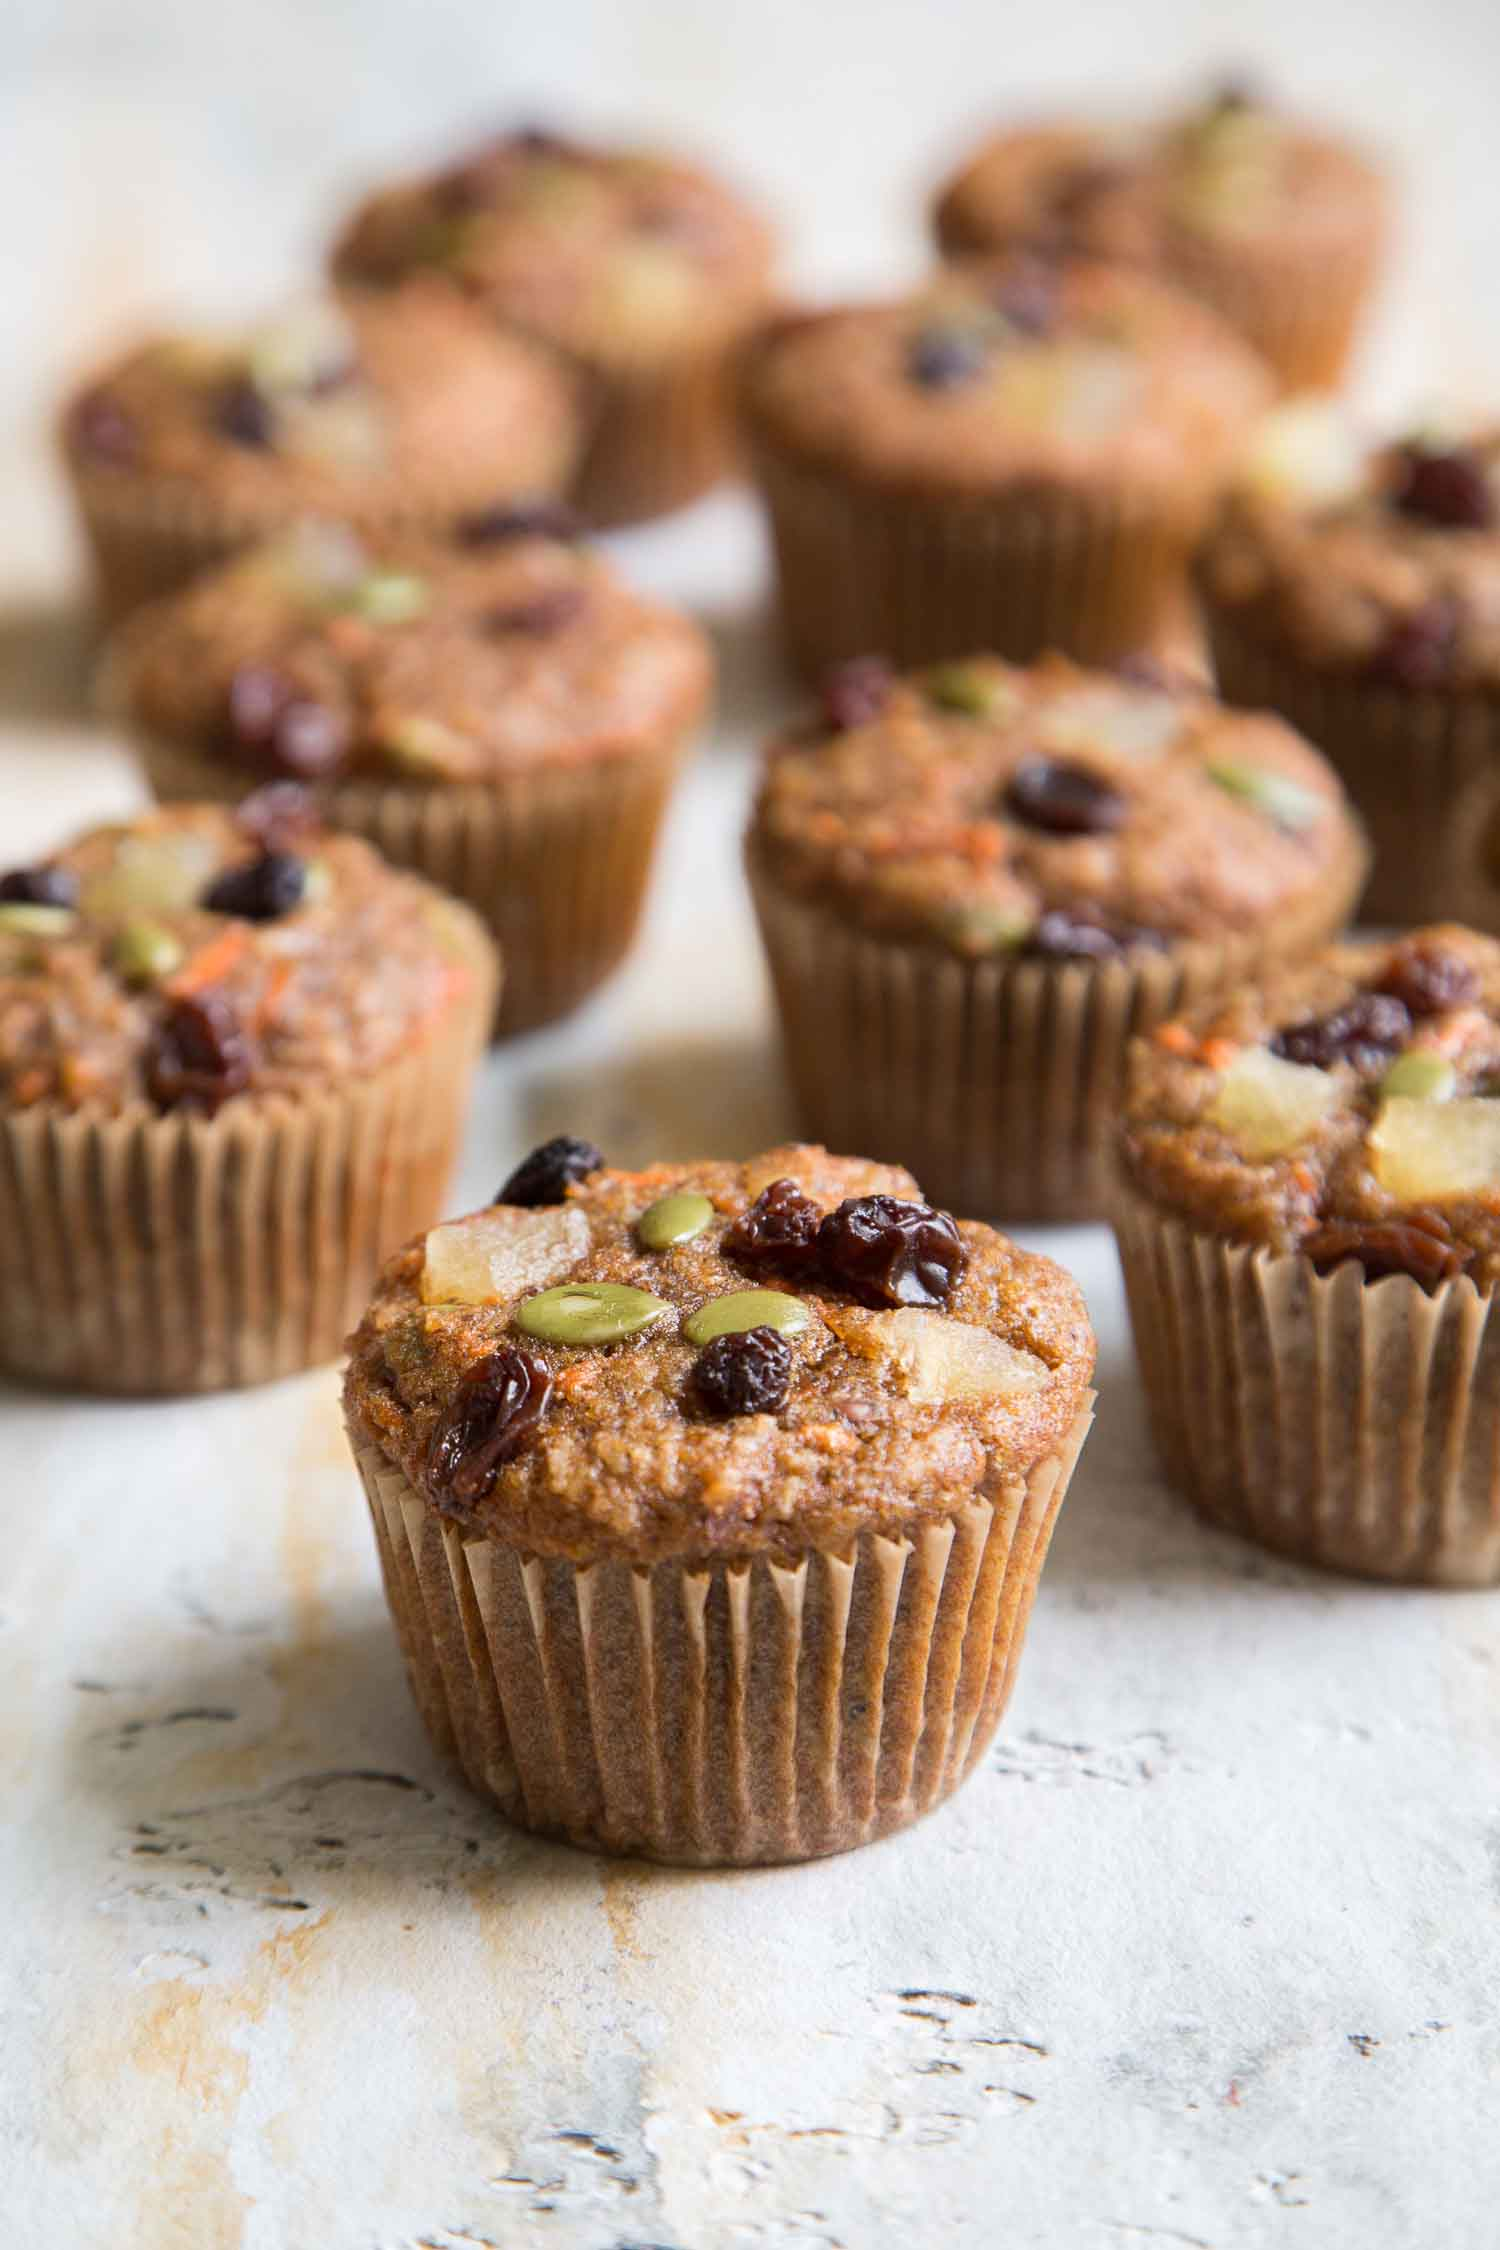 Forum on this topic: Morning Glory Muffins, morning-glory-muffins/